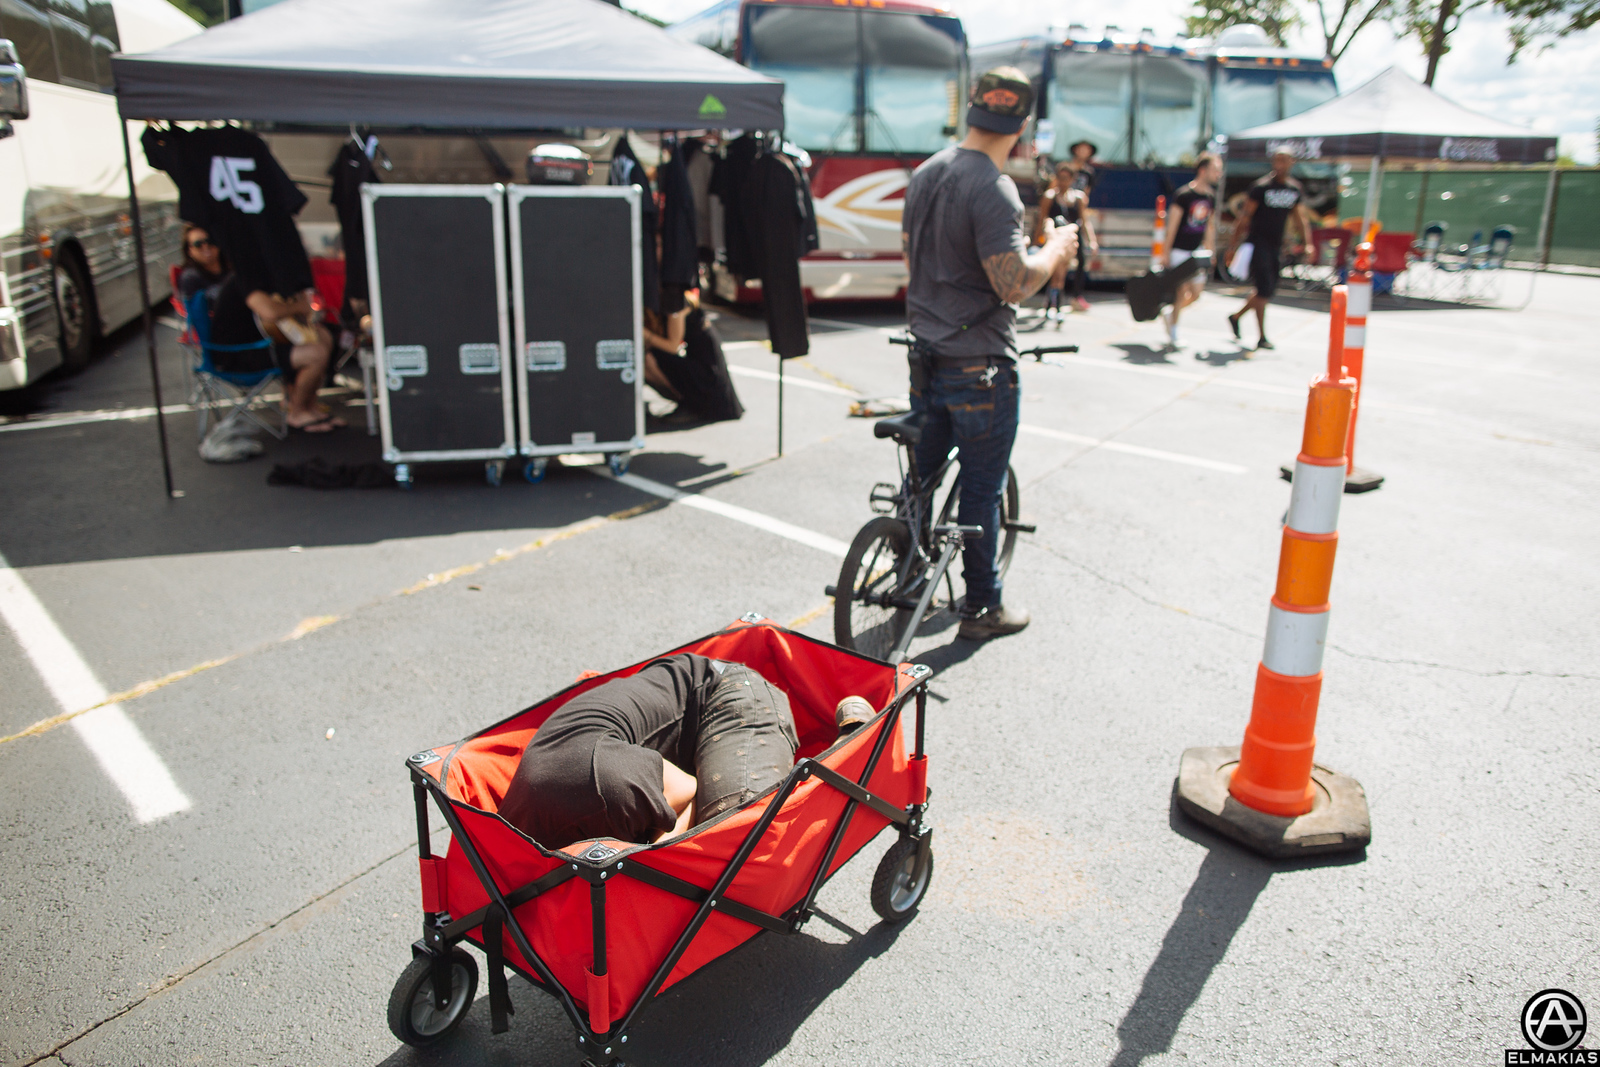 This is how I get around Warped Tour